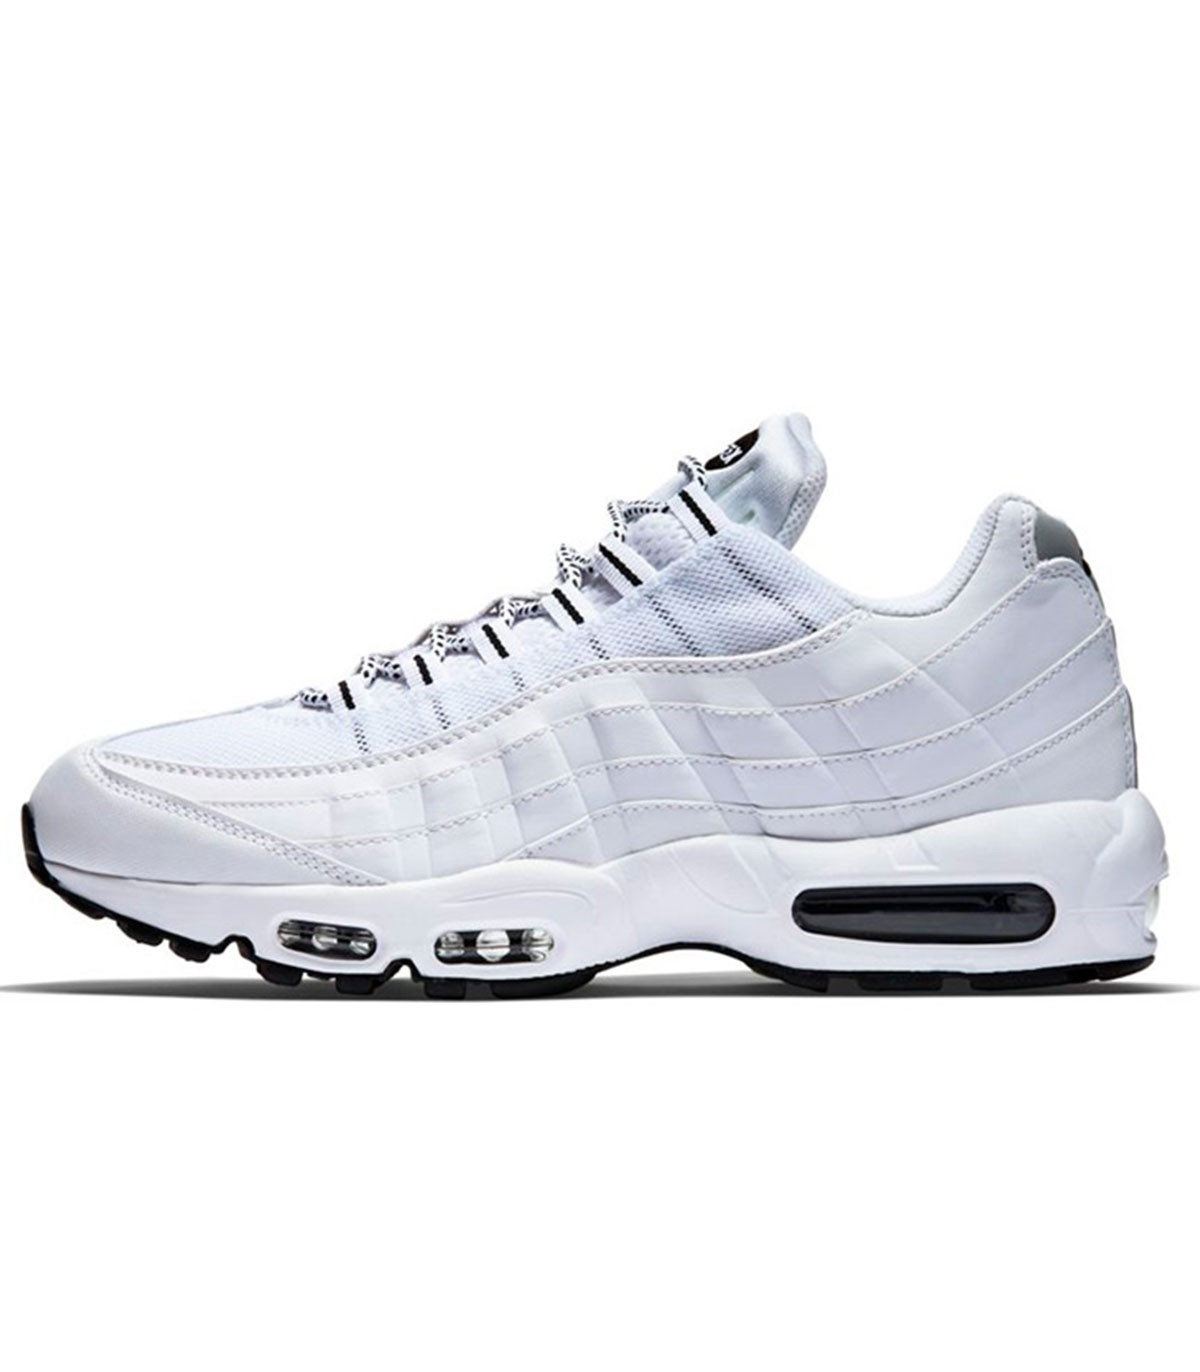 Nike Nike Air 95 Zapatillas Max Nike 95 Zapatillas Max Zapatillas Air 6bf7Ygy